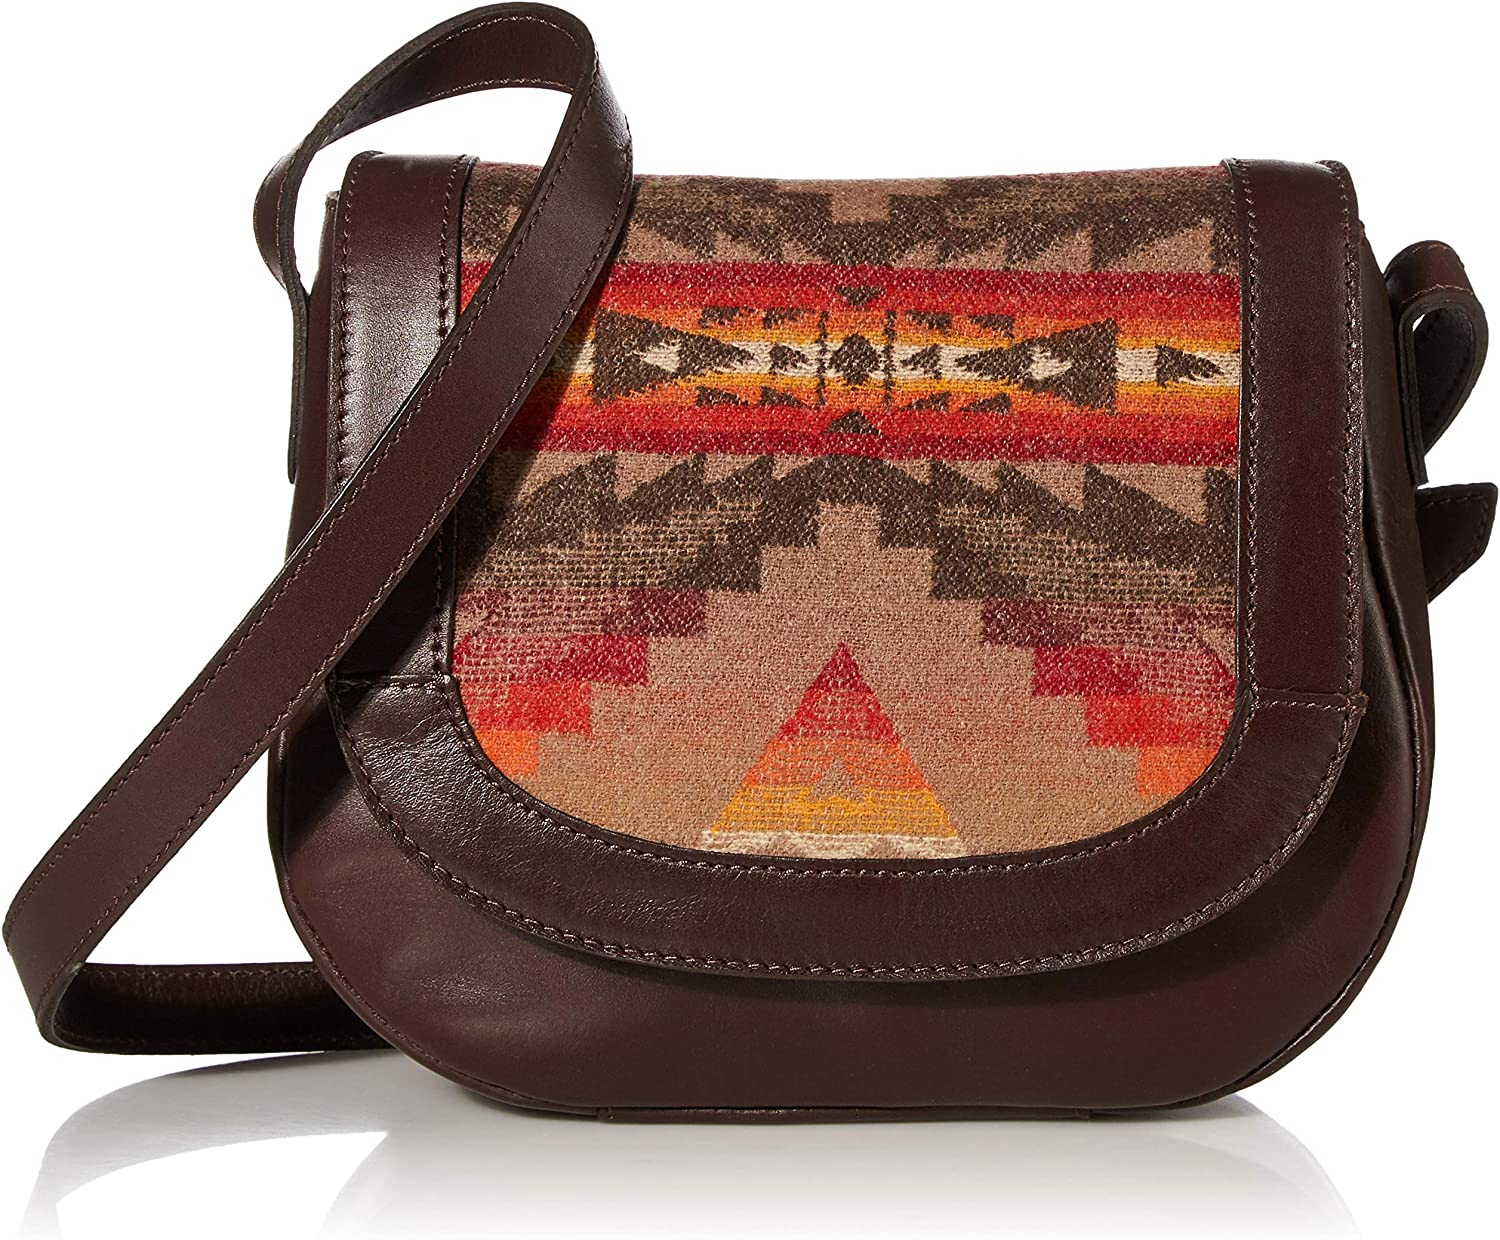 Pendleton Women's Saddle Bag, Sierra Ridge - Tan, One Size